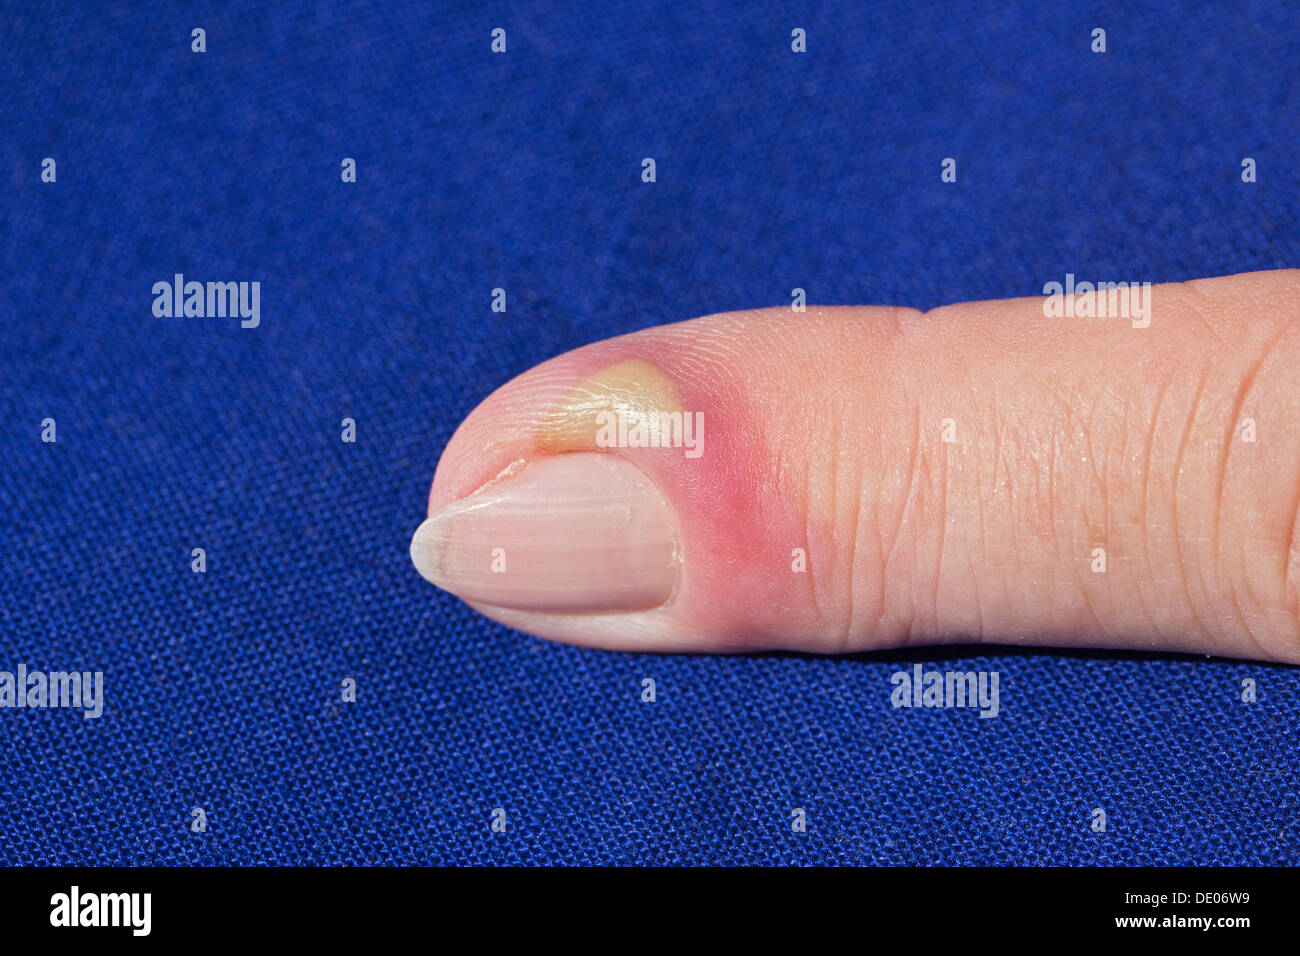 Bacterial infection, inflammation, index finger, pus, abscess Stock Photo